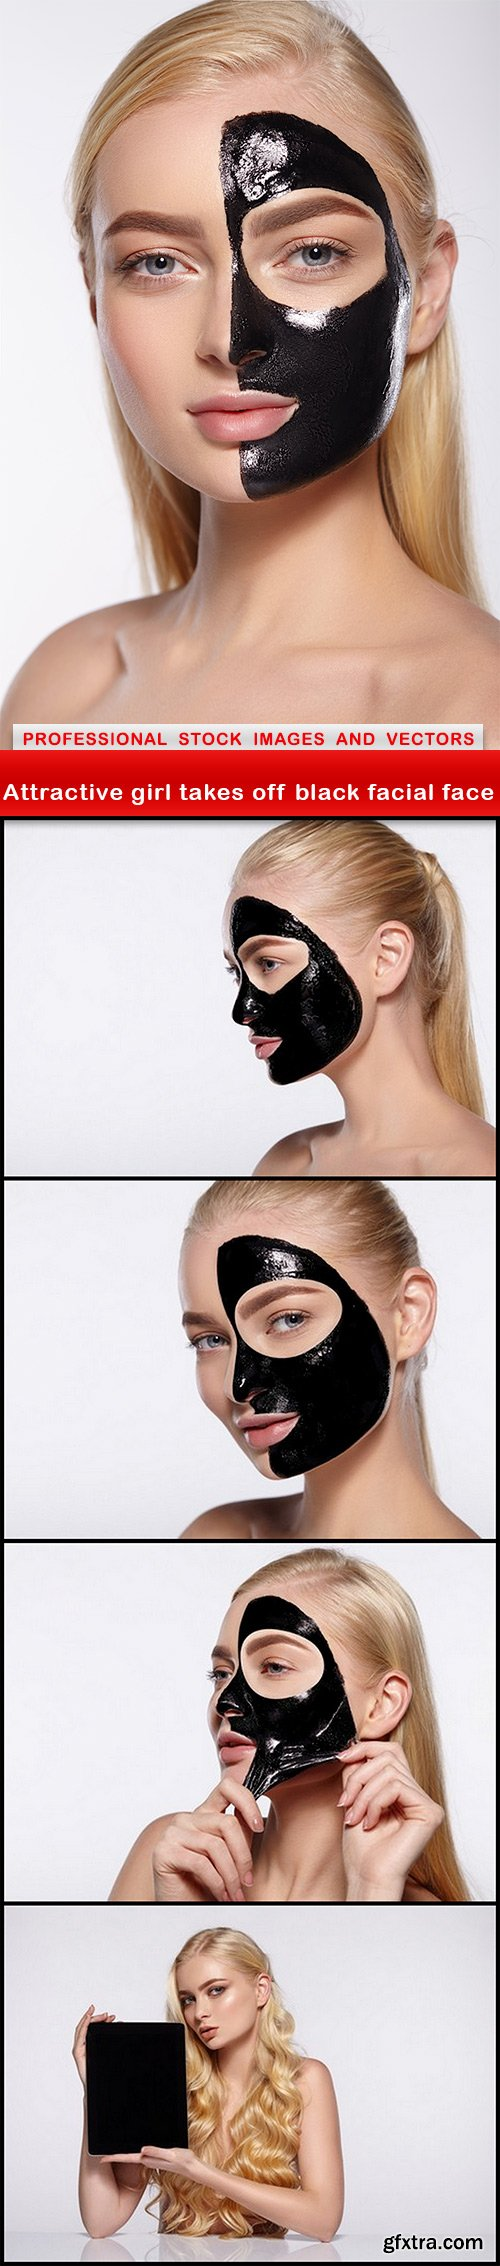 Attractive girl takes off black facial face - 5 UHQ JPEG